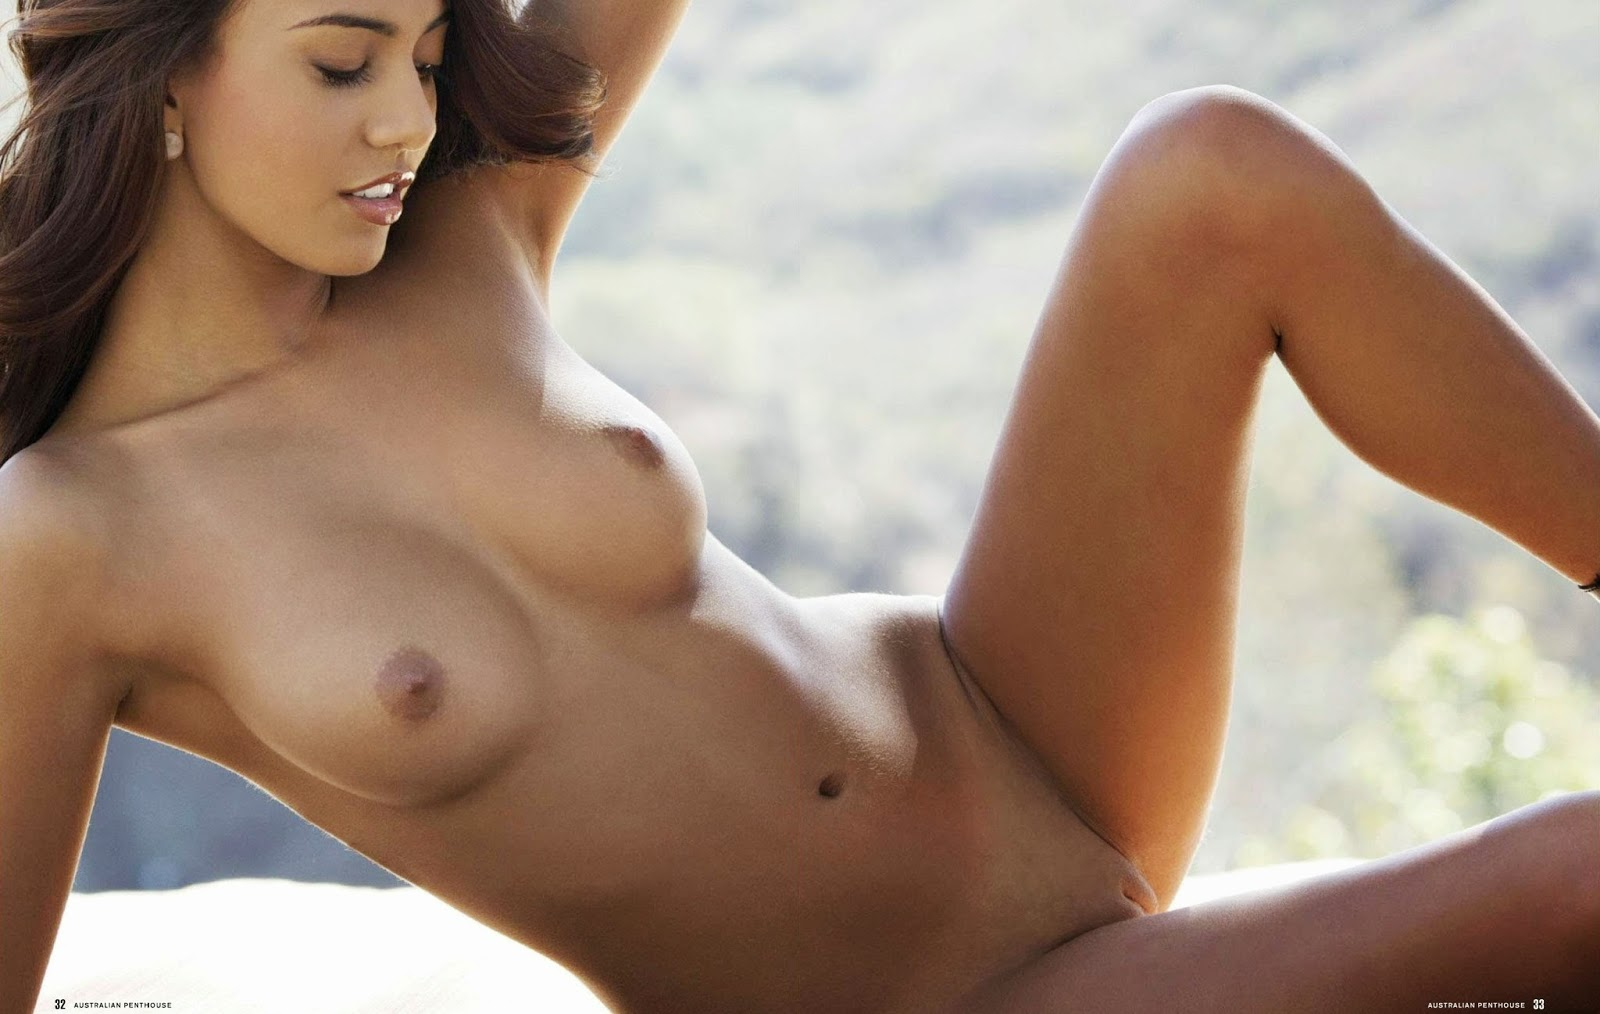 penthouse magazine free pictures